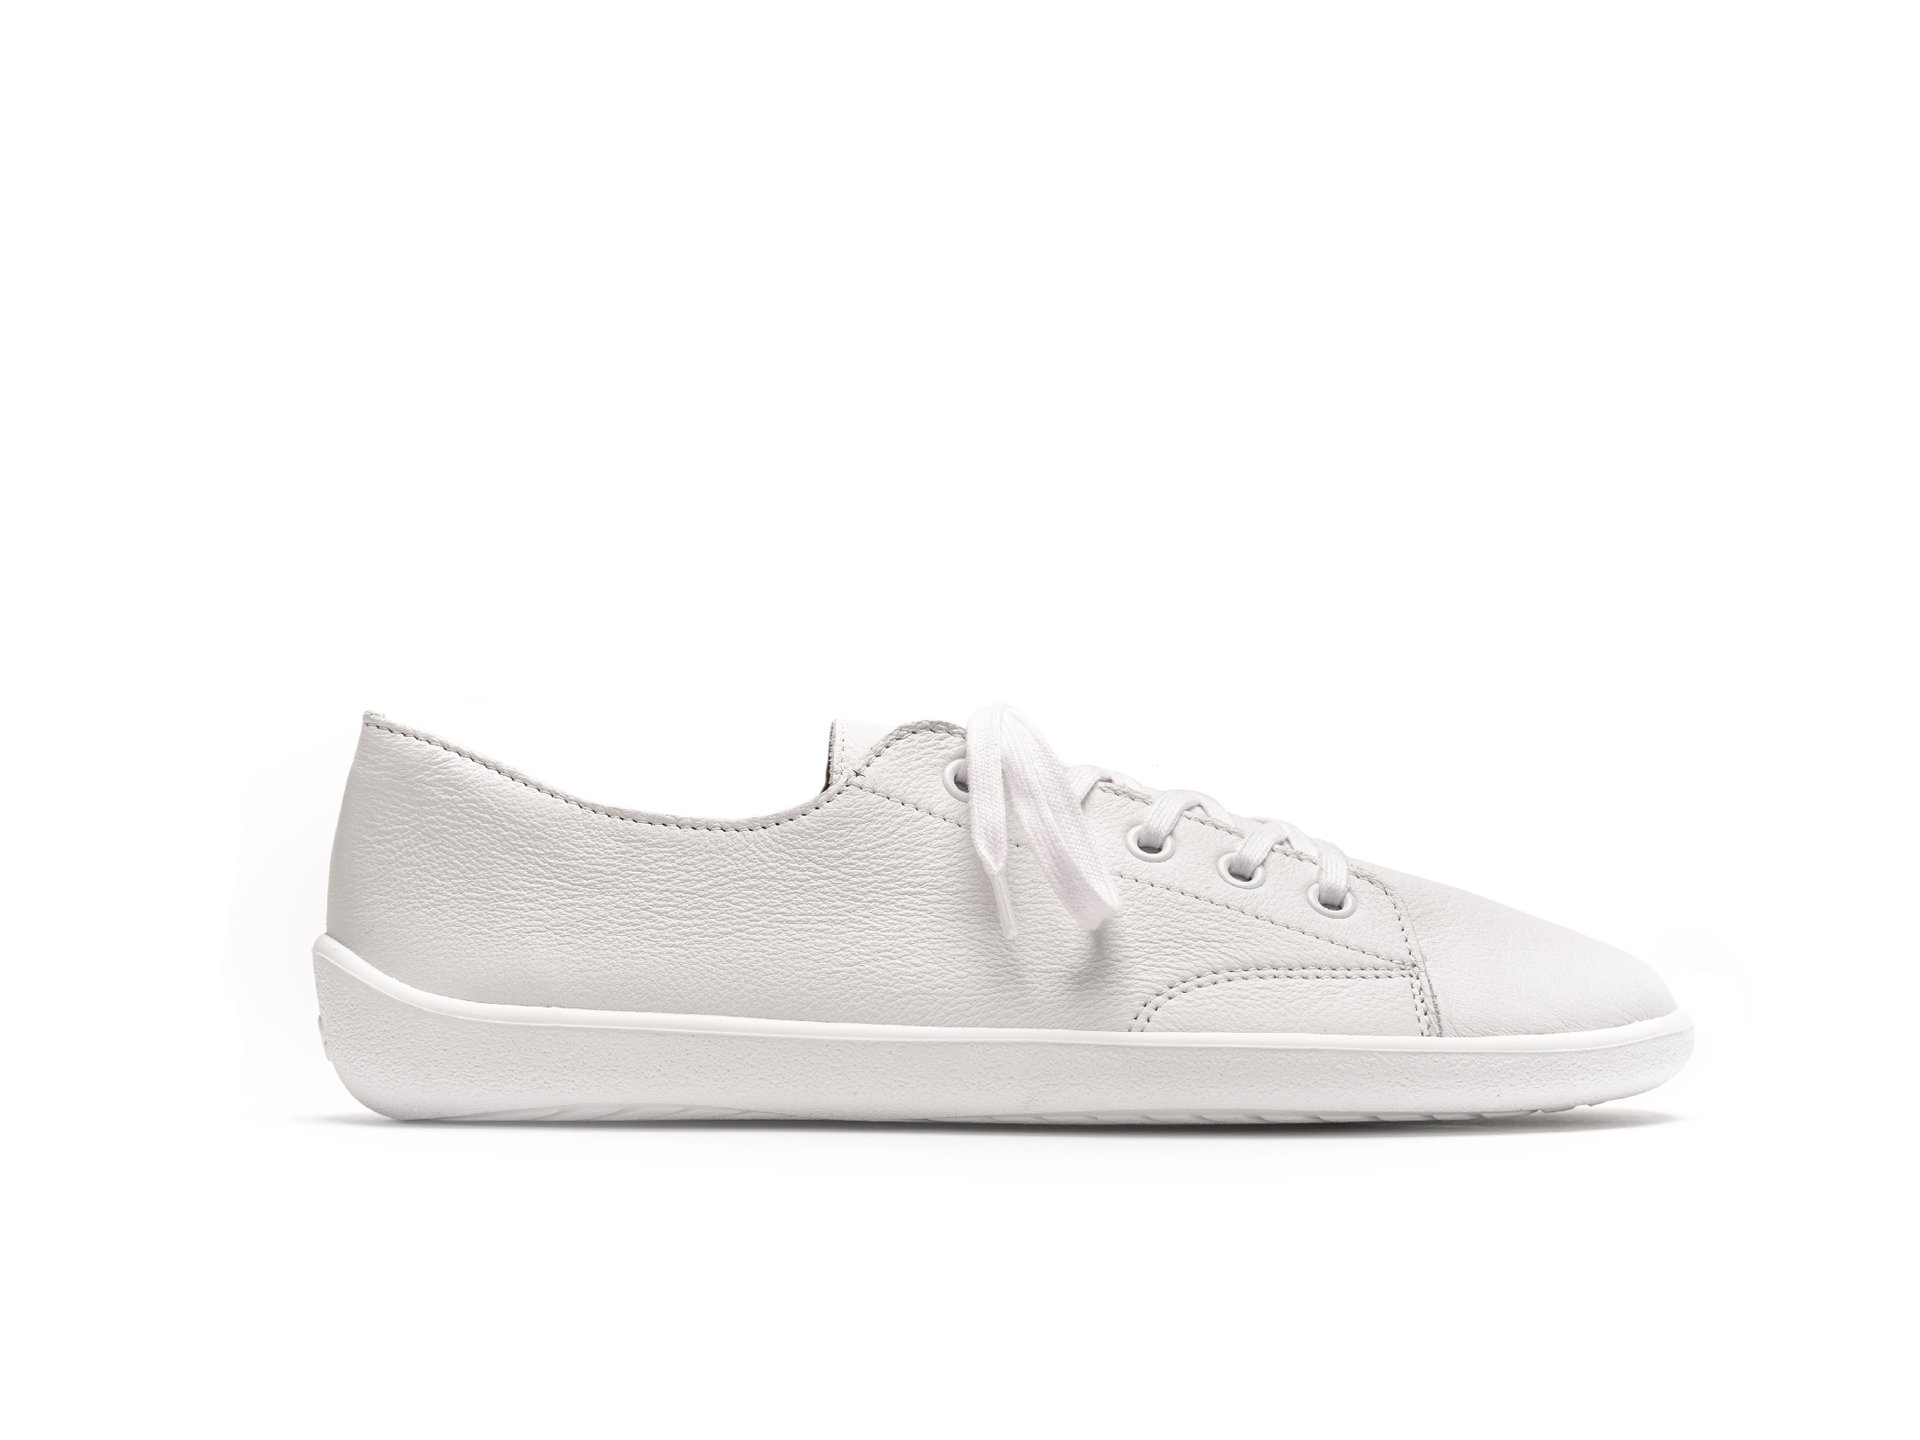 Barefoot Sneakers Be Lenka Prime - White 37